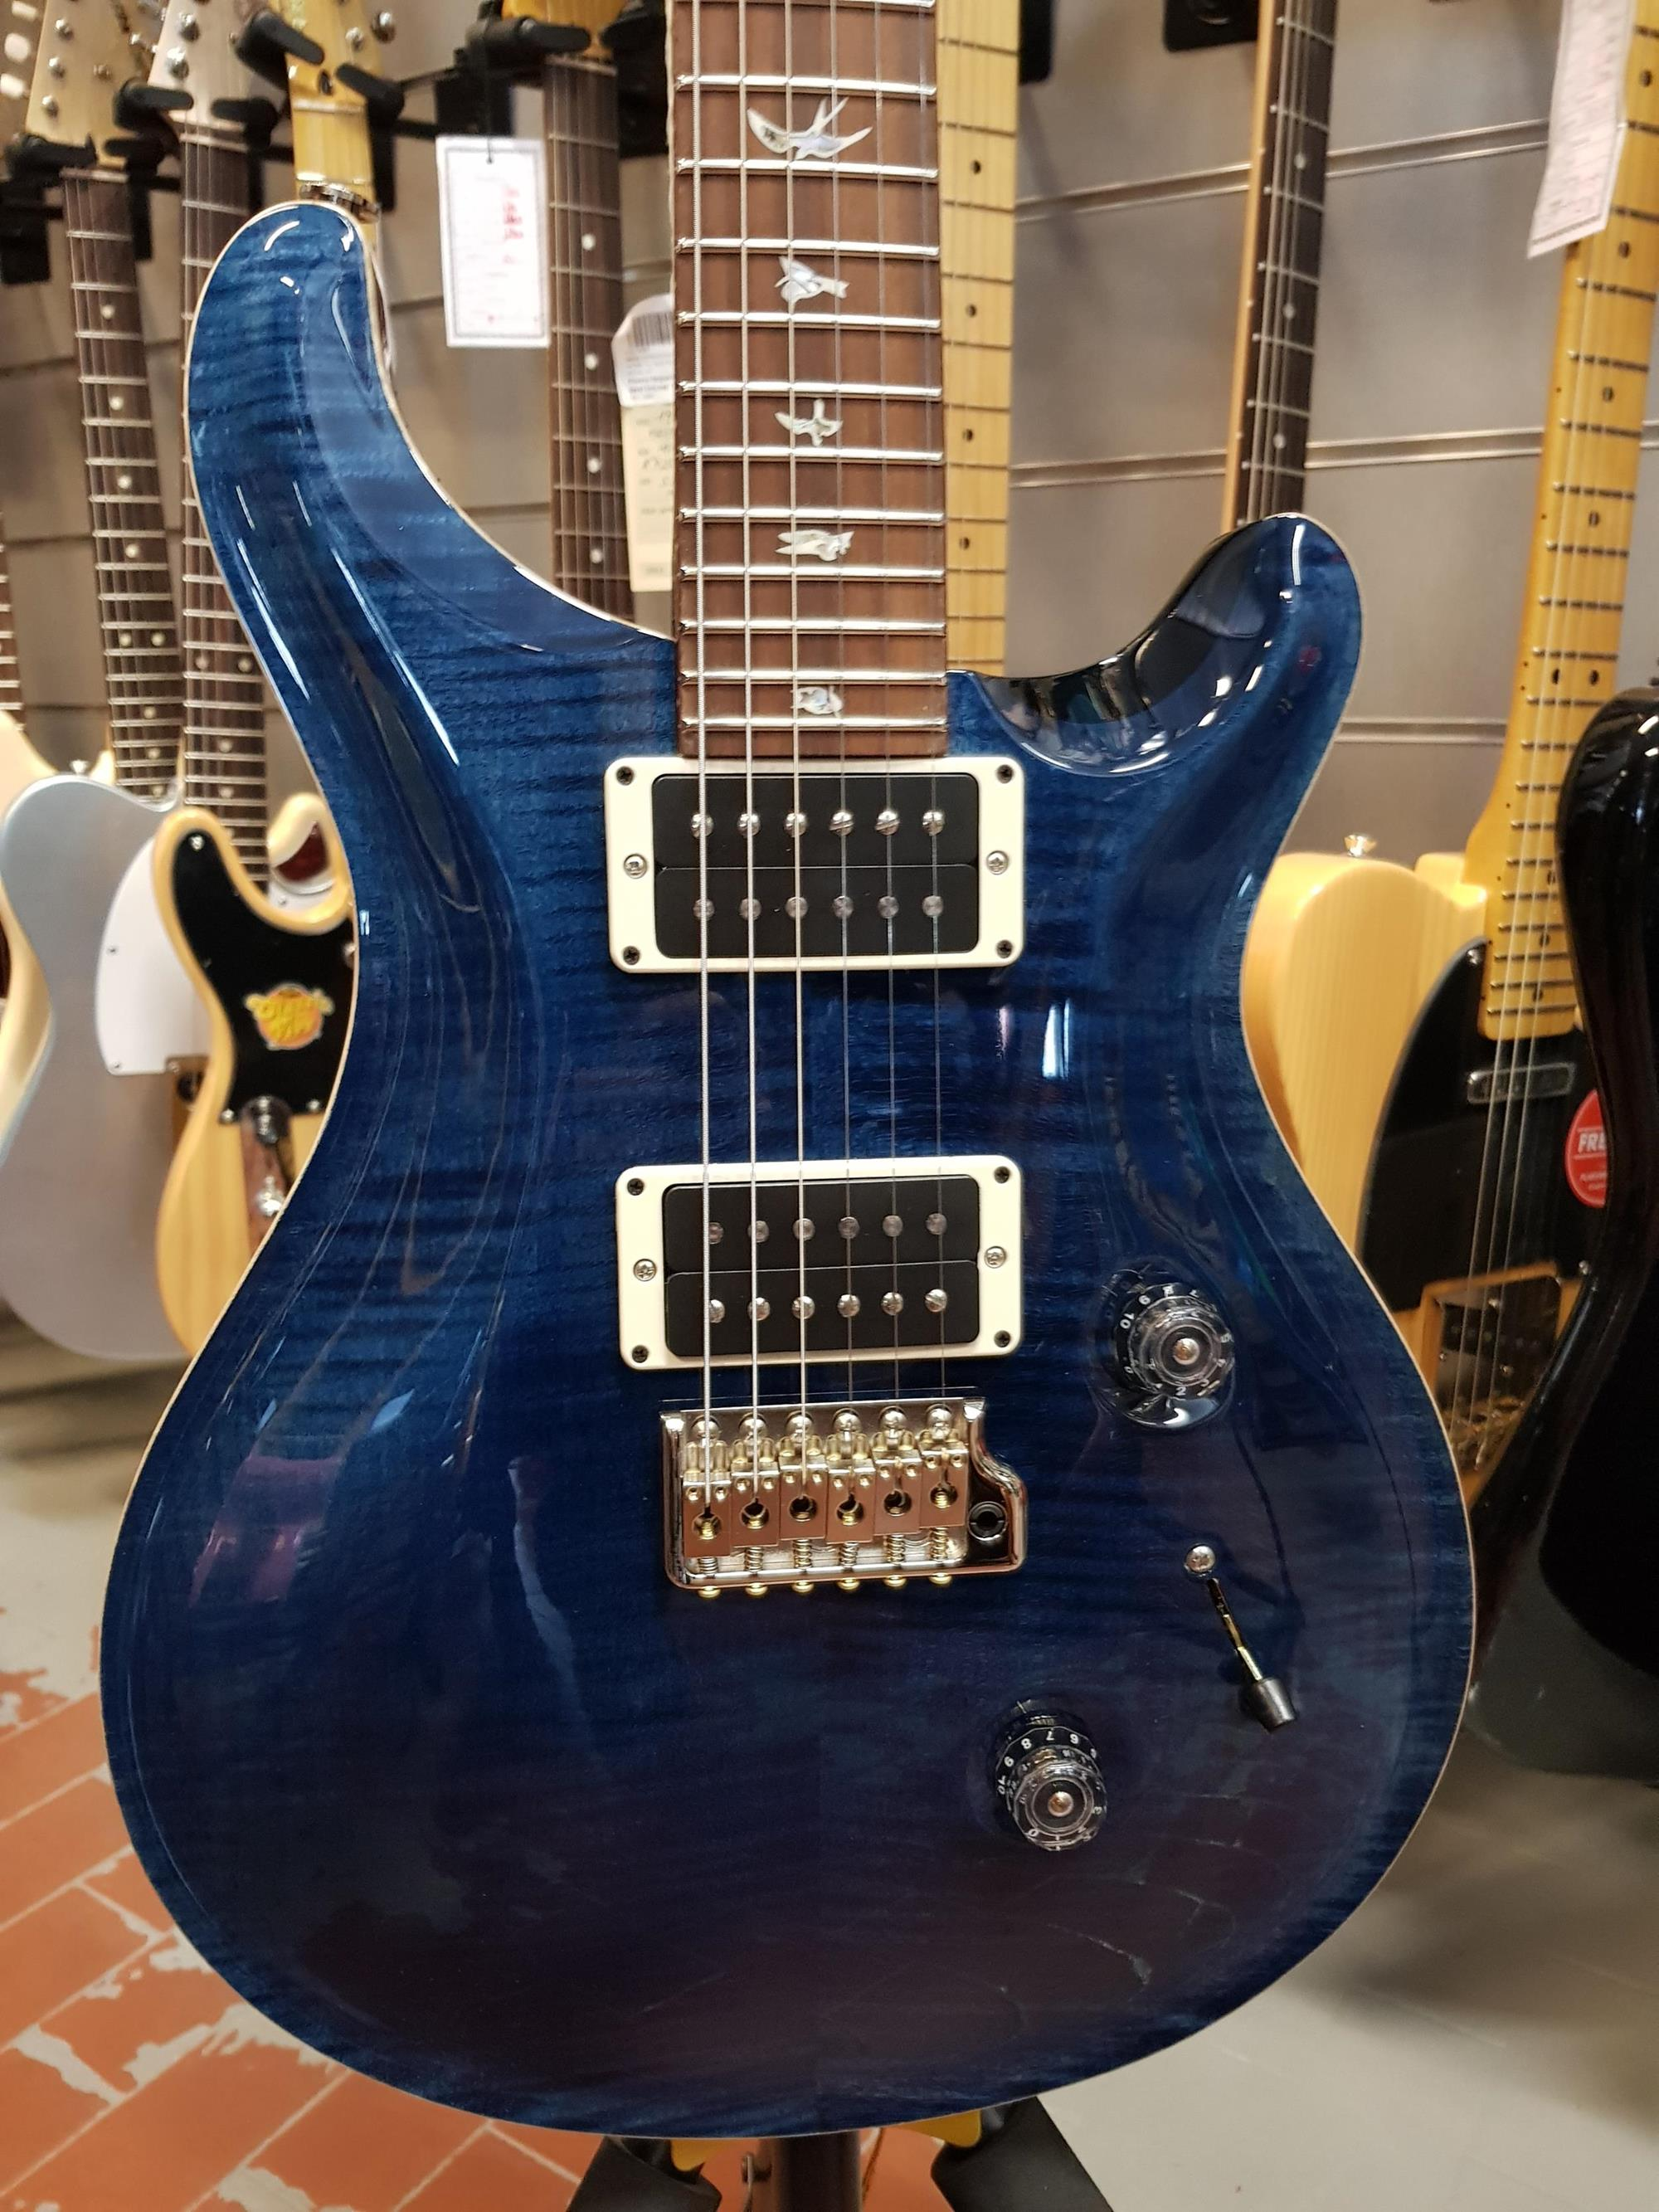 PRS-PAUL-REED-SMITH-CORE-CUSTOM-24-BIRDS-WHALE-BLUE-85-15-sku-18256